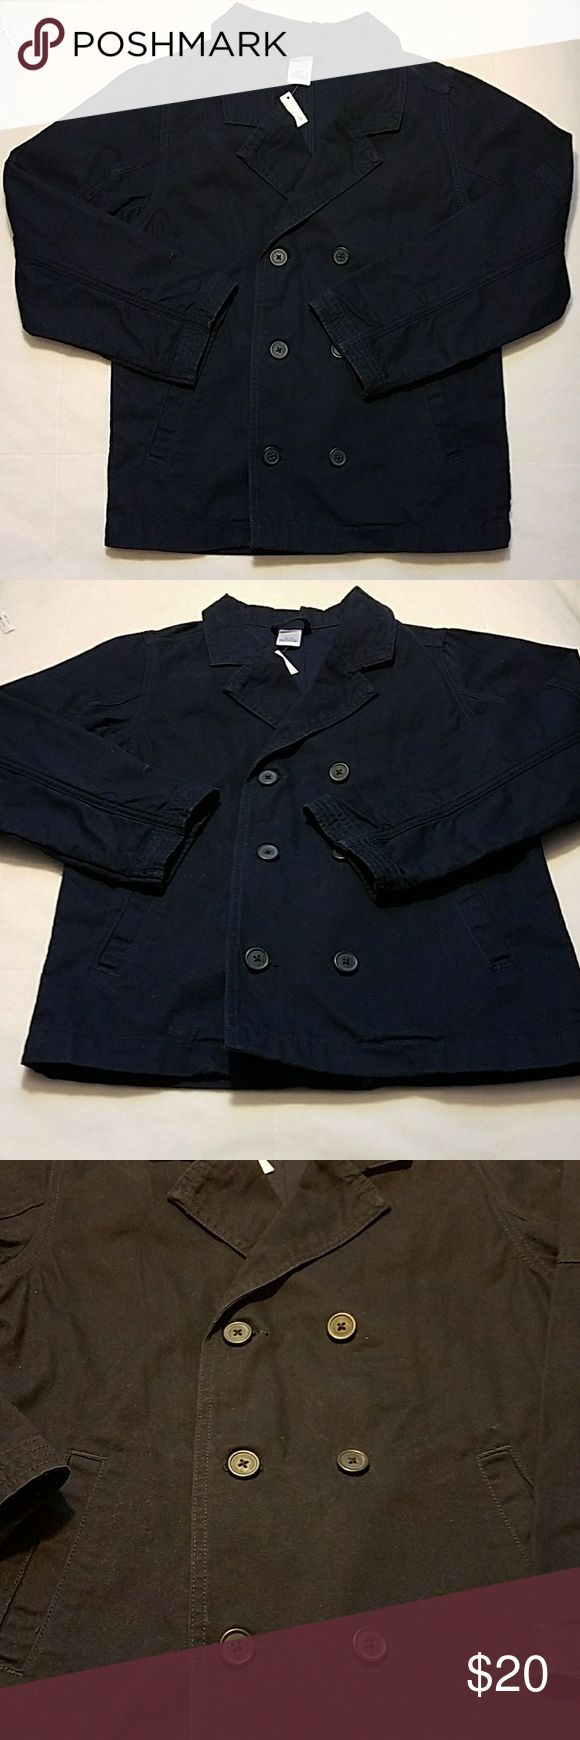 GYMBOREE Girl Trench Coat Jacket, Navy blue M 7_8 GYMBOREE TRENCH COAT JACKET Light Spring Jacket with no lining Navy blue color Size M (7_8) Front Side pockets Double breasted Button closure at Front 100 % COTTON  Machine washable  New with Tags Gymboree Jackets & Coats